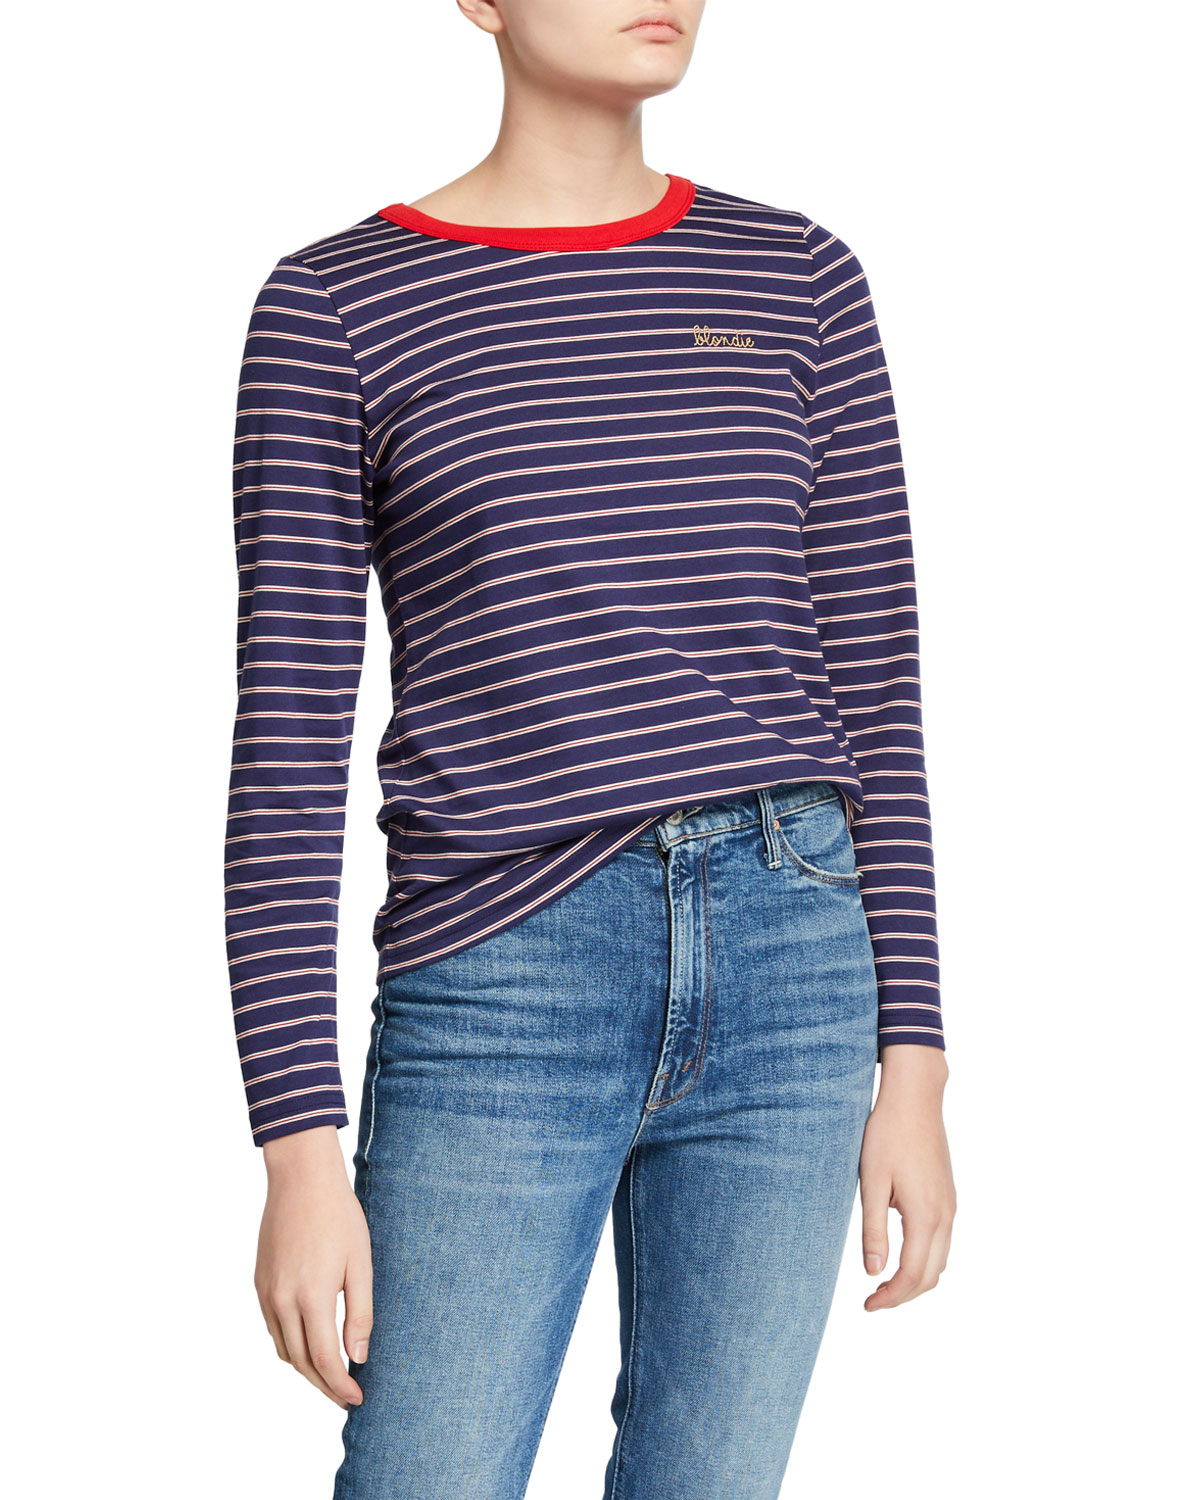 Maison Labiche BLONDIE STRIPED LONG-SLEEVE TEE